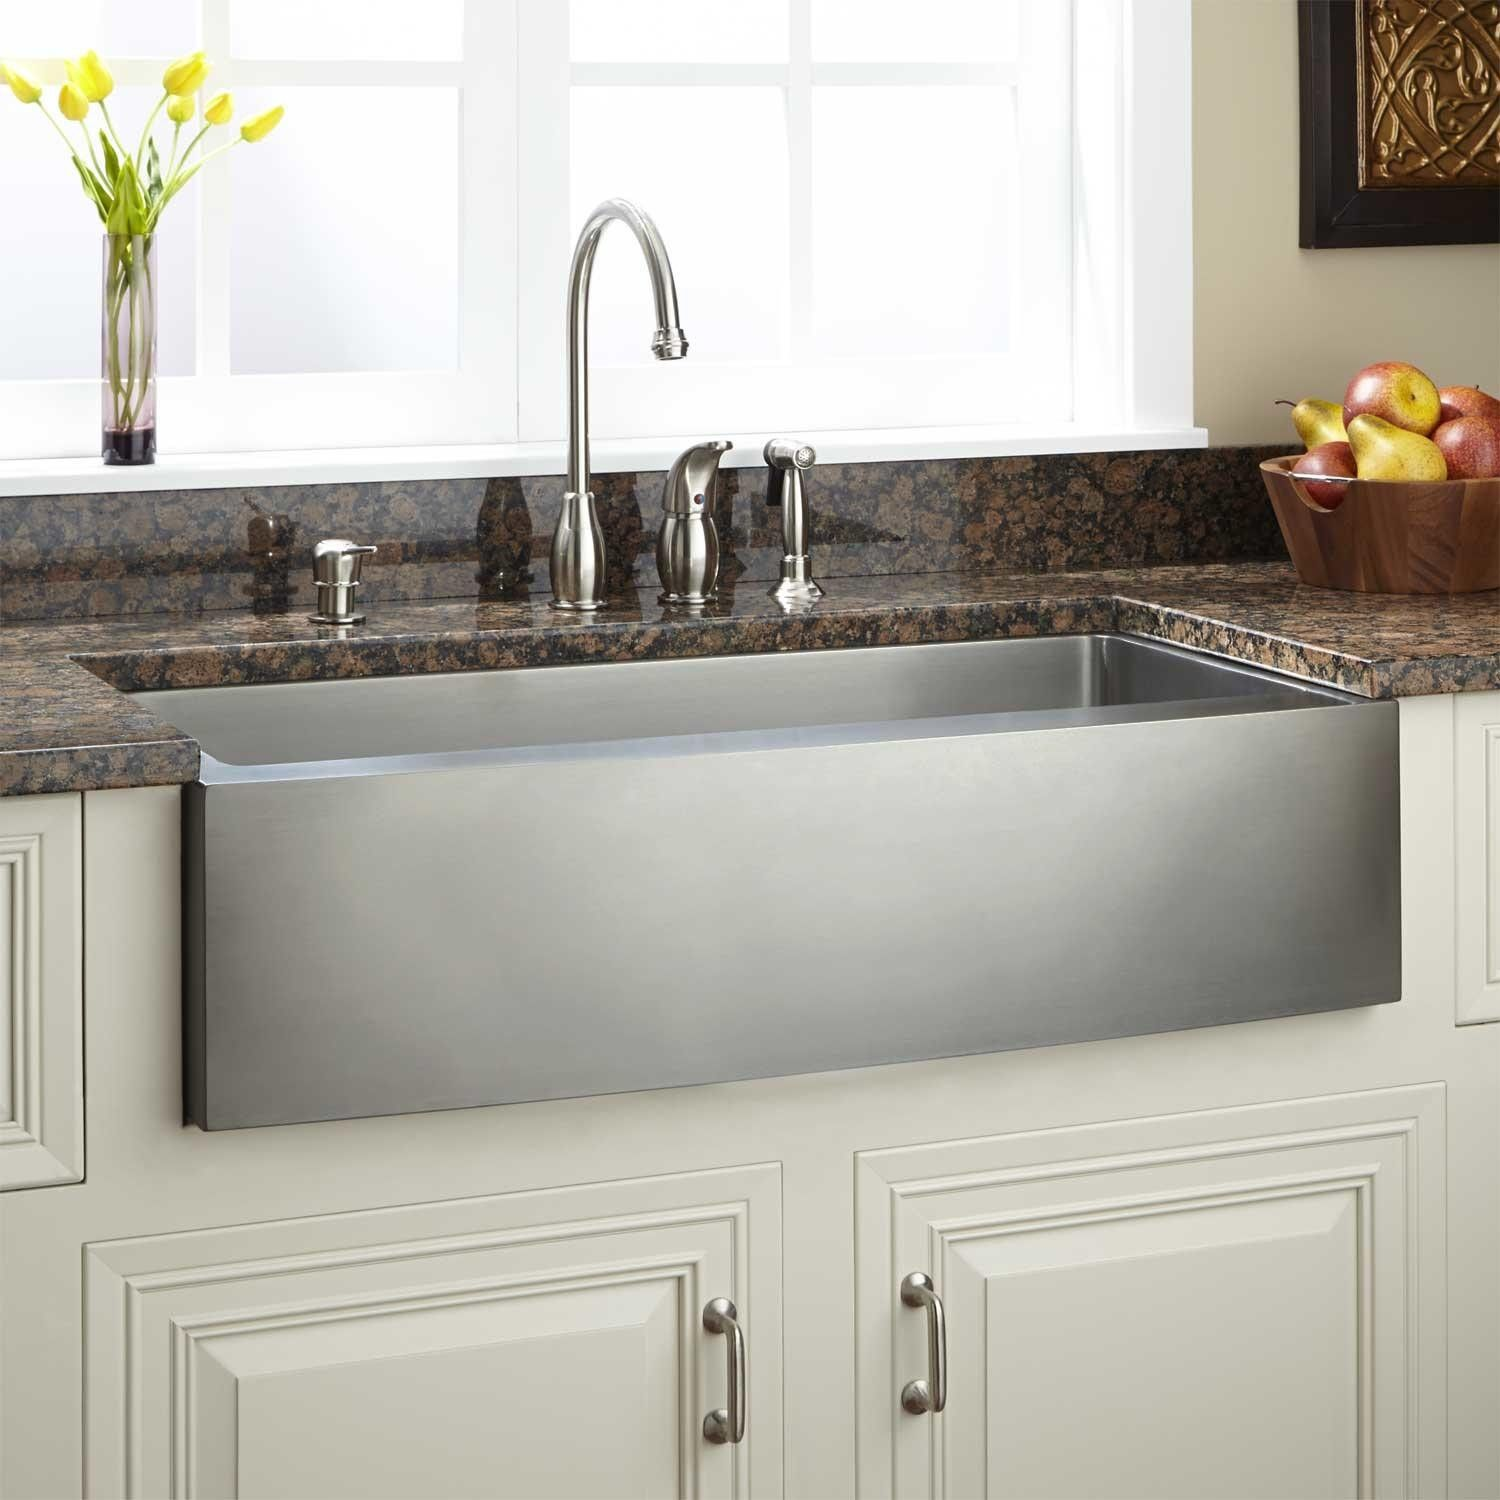 39 Optimum Stainless Steel Farmhouse Sink Curved Front With